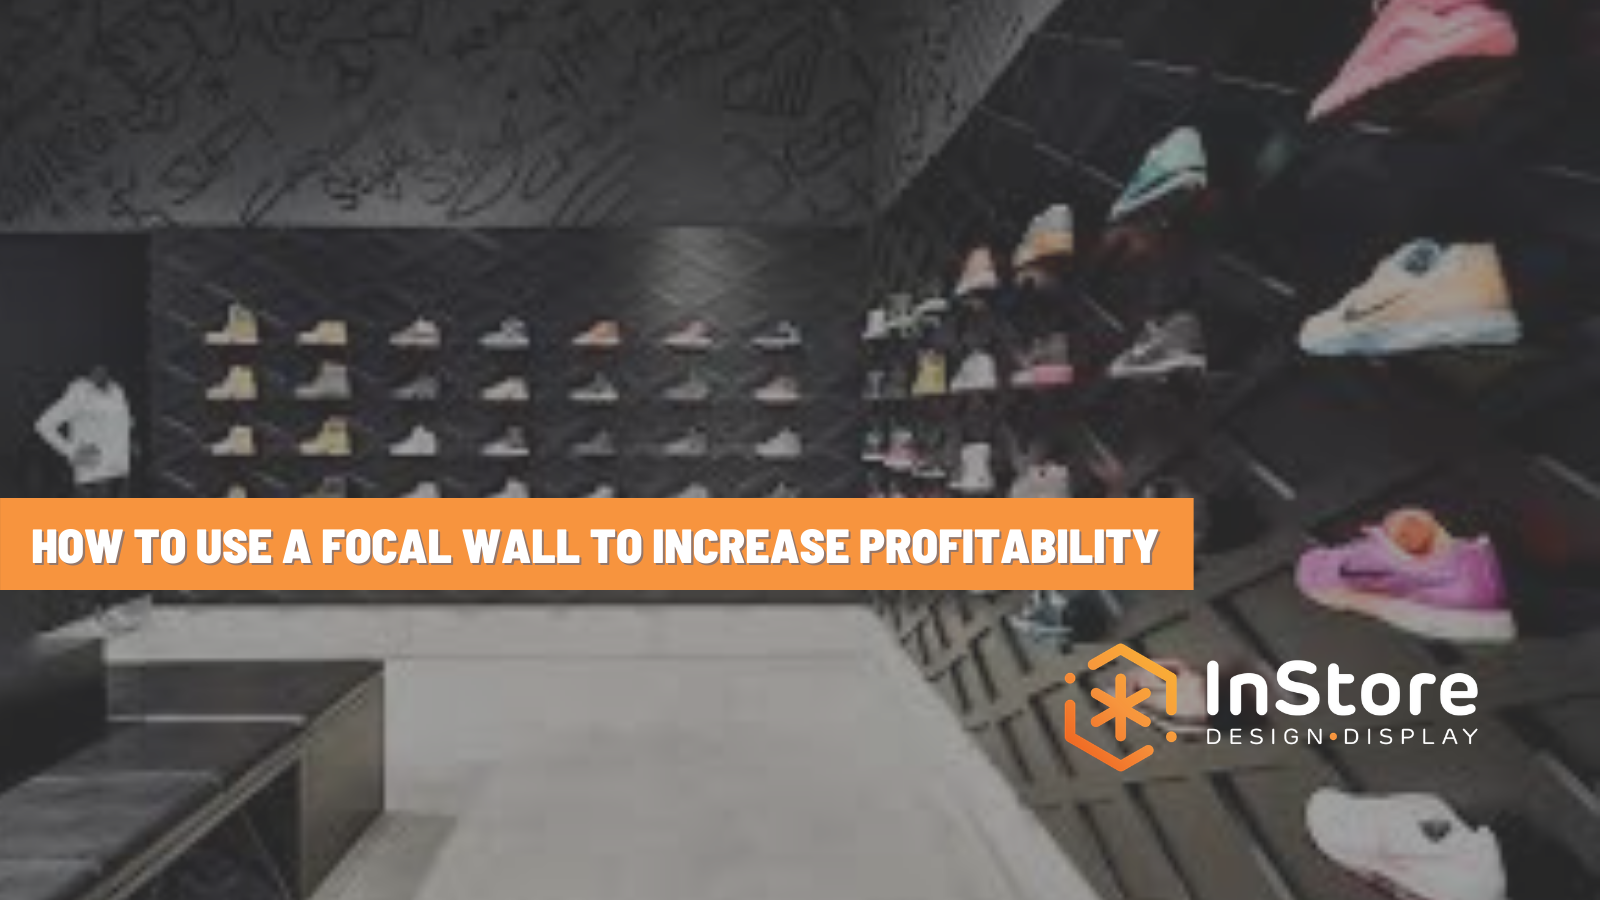 How to Use a Focal Wall to Increase Profitability